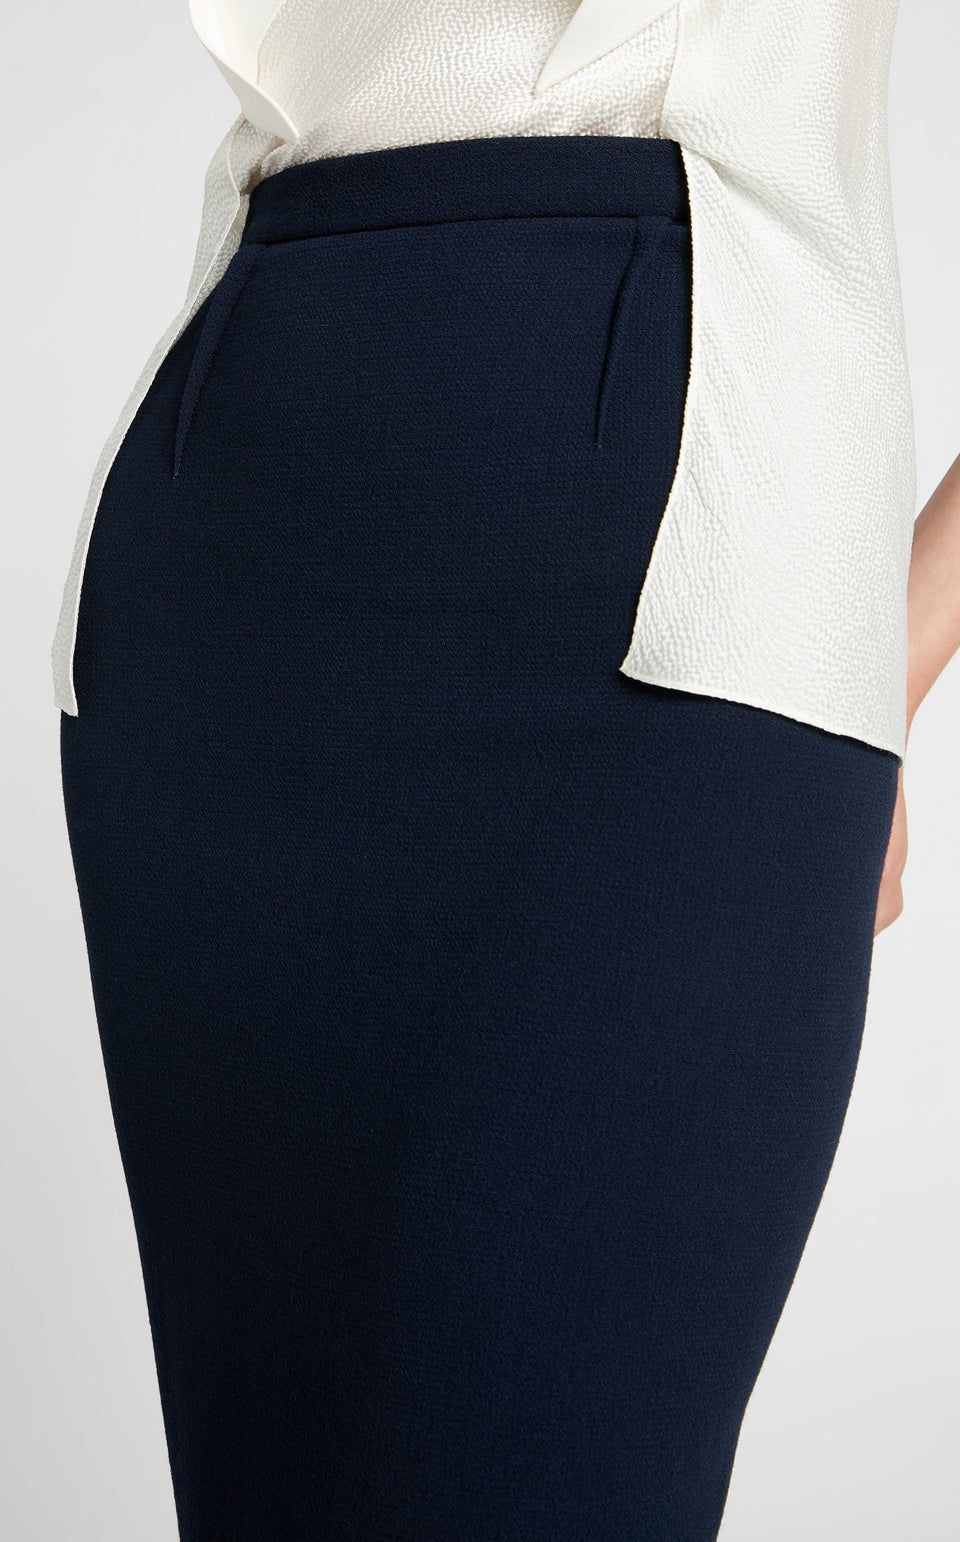 Arreton Skirt In Navy/Black from Roland Mouret